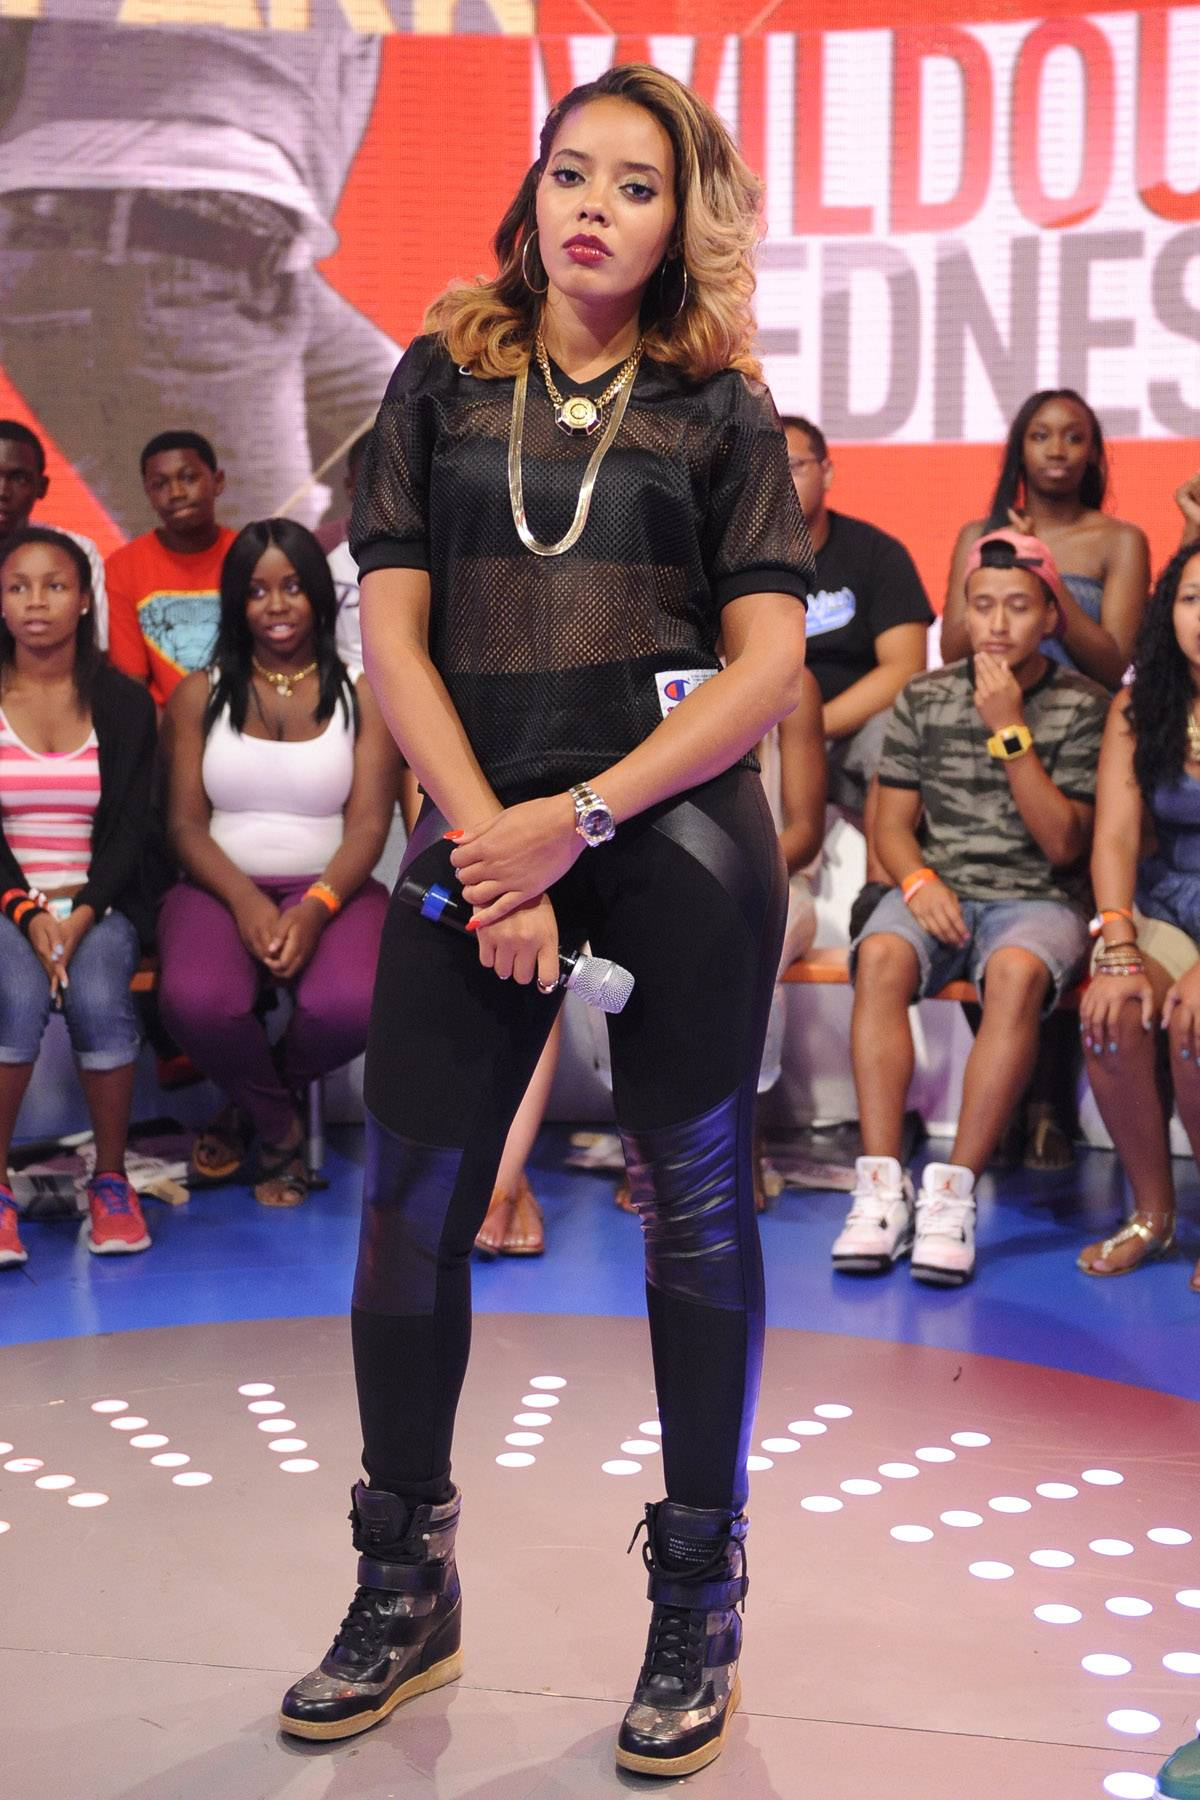 Sporty - Angela Simmons rocked an all-black sporty yet chic outfit with the football jersey top, leather leggings and platform sneakers. Get 'em, girl!  (photo: John Ricard / BET)